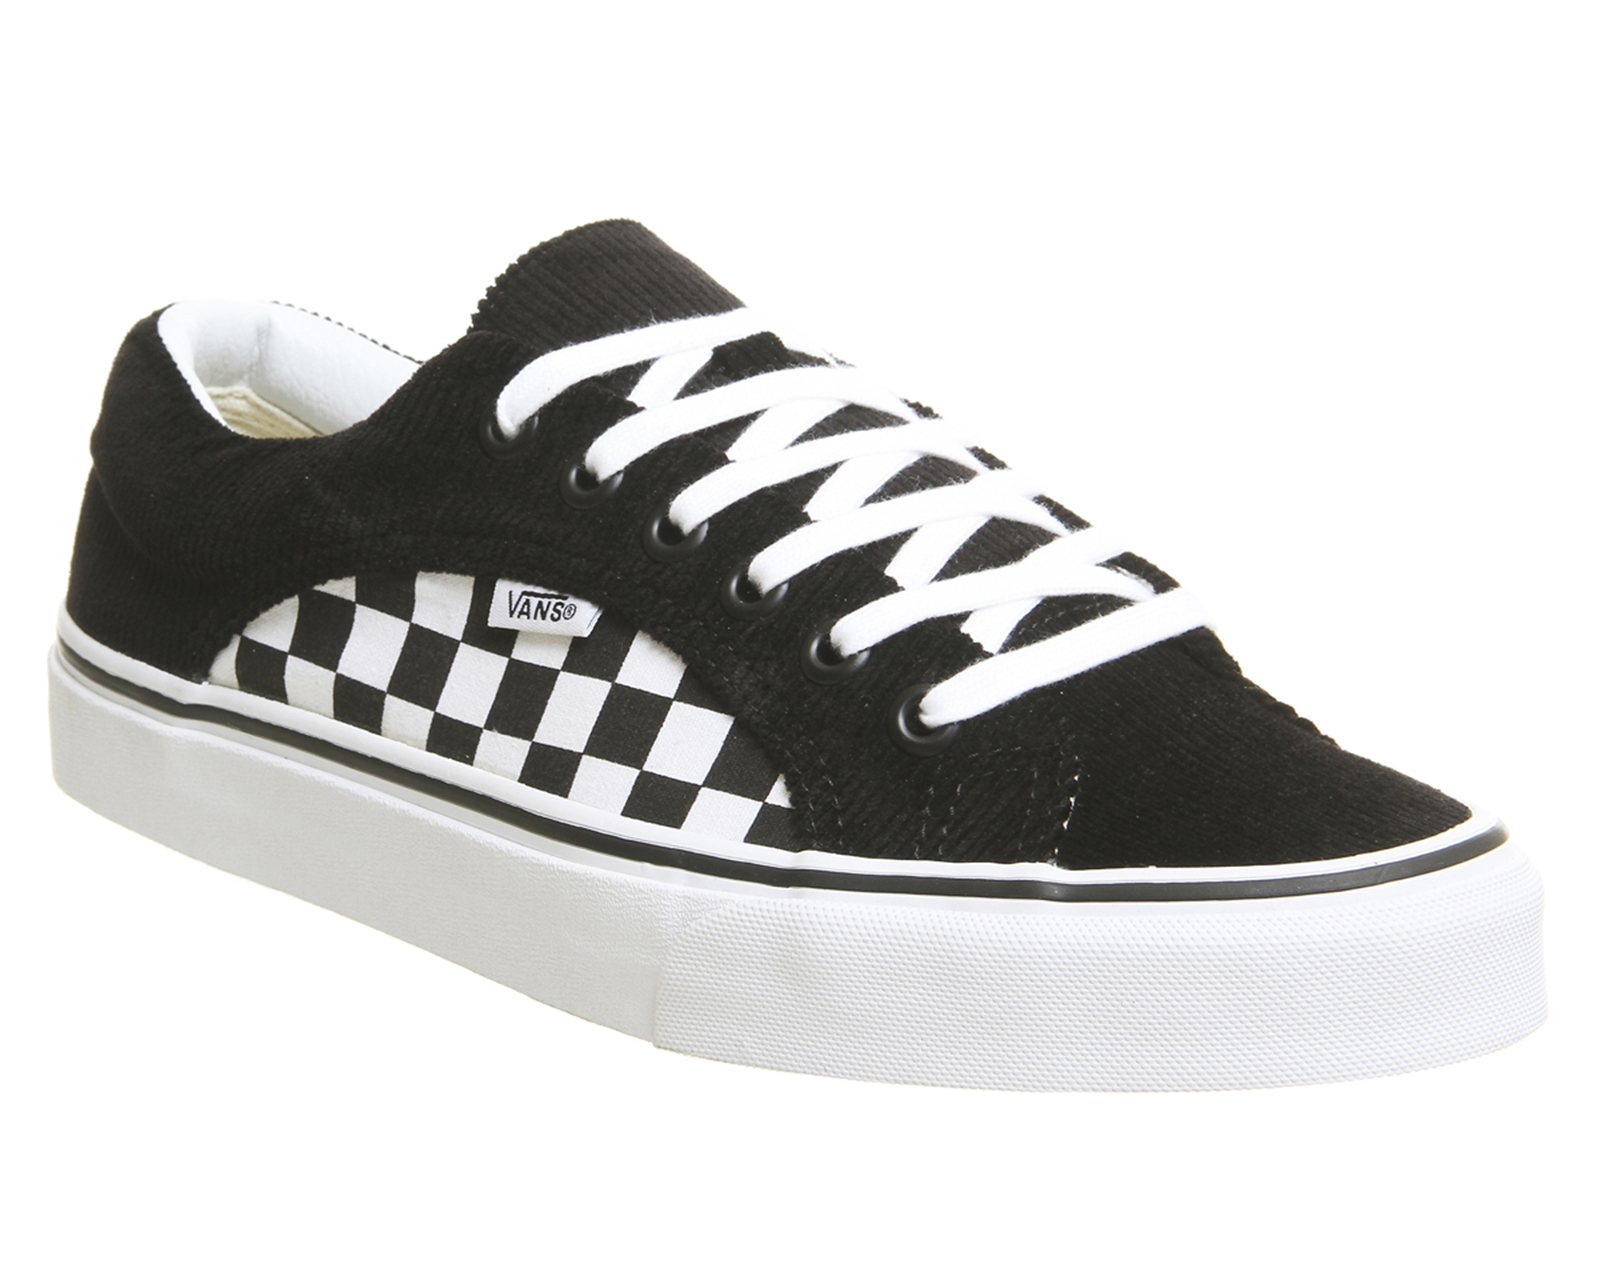 94f950d2f3f9ef Sentinel Vans Lampin Trainers Black True White Checkerboard Cord Trainers  Shoes